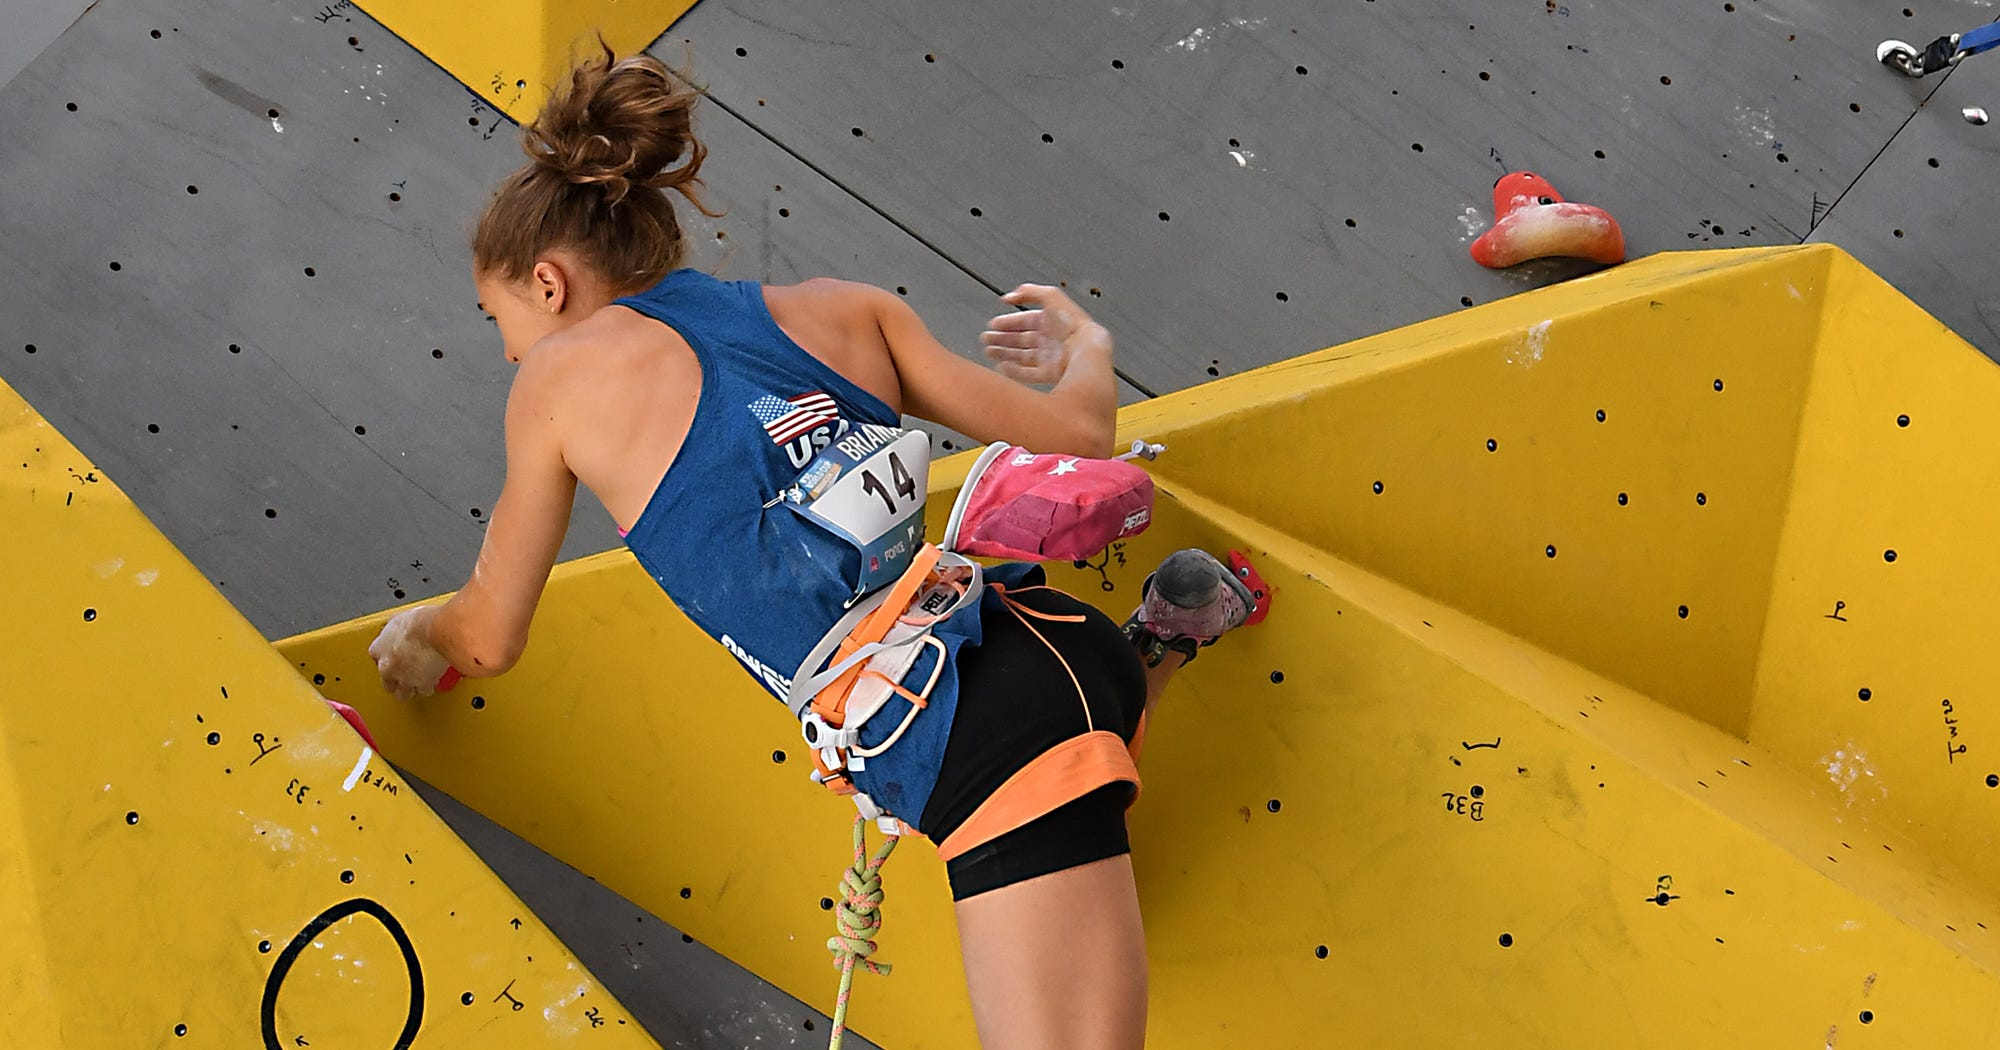 Top Female Rock Climbers To Follow On Instagram In 2018